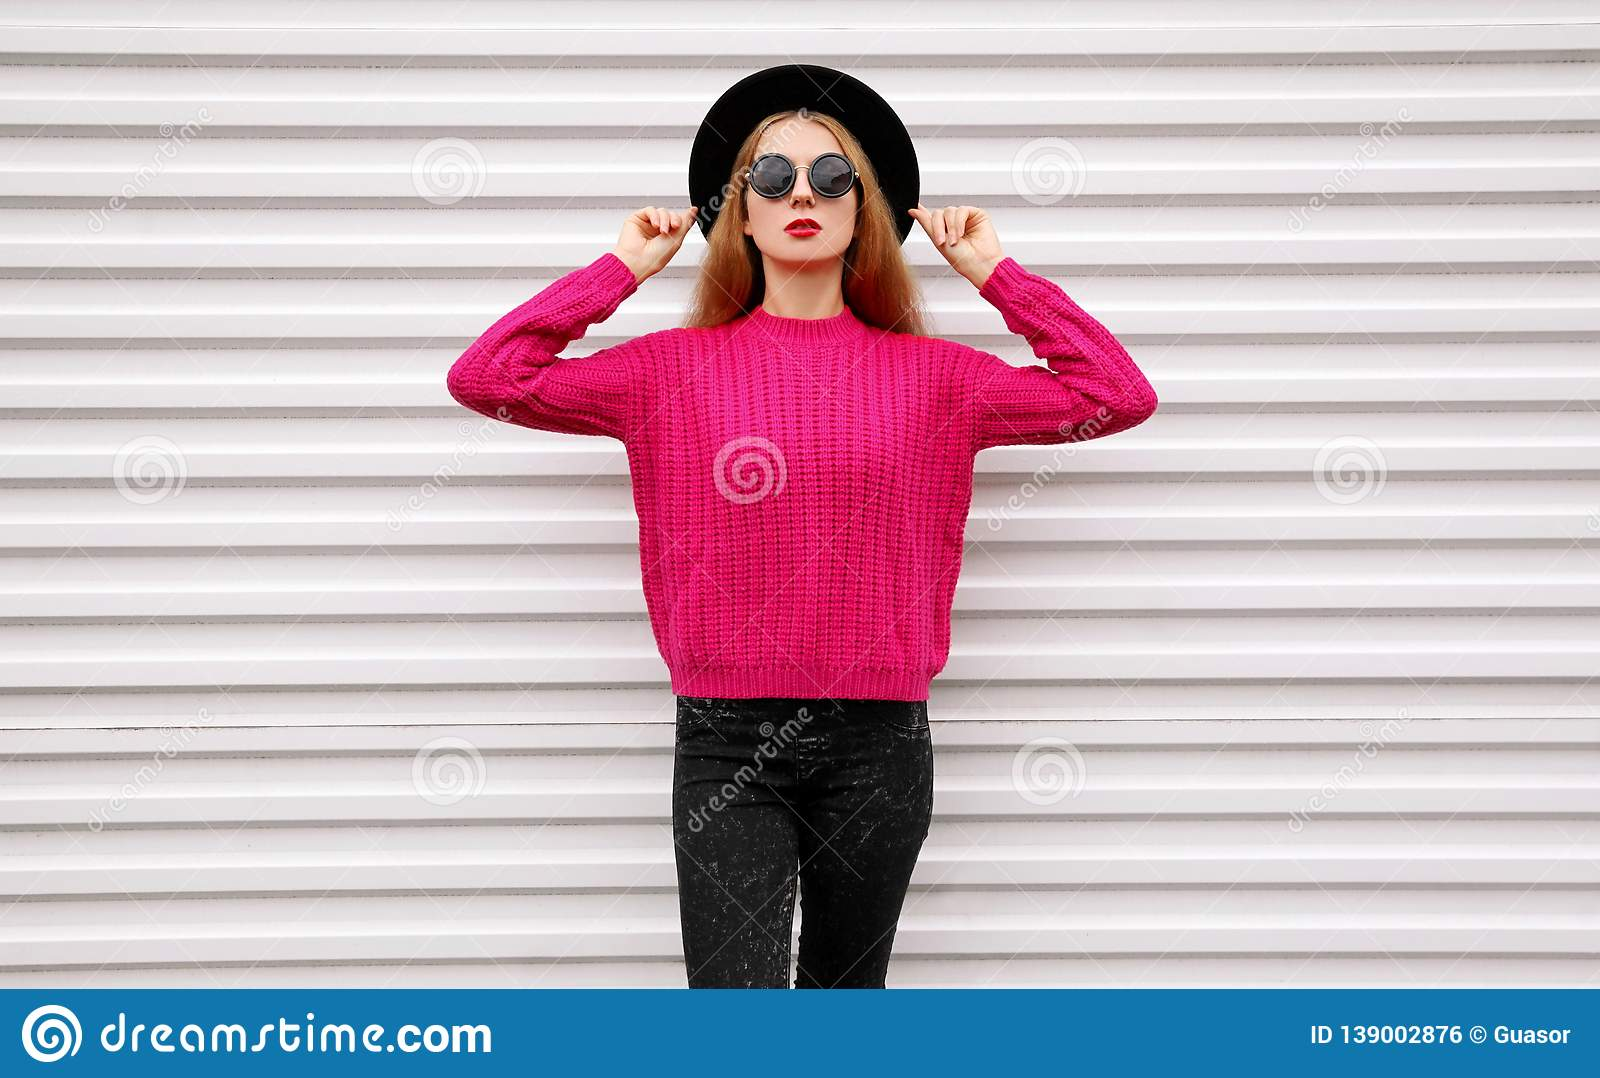 Stylish pretty woman model posing in colorful pink knitted sweater, black round hat on white wall